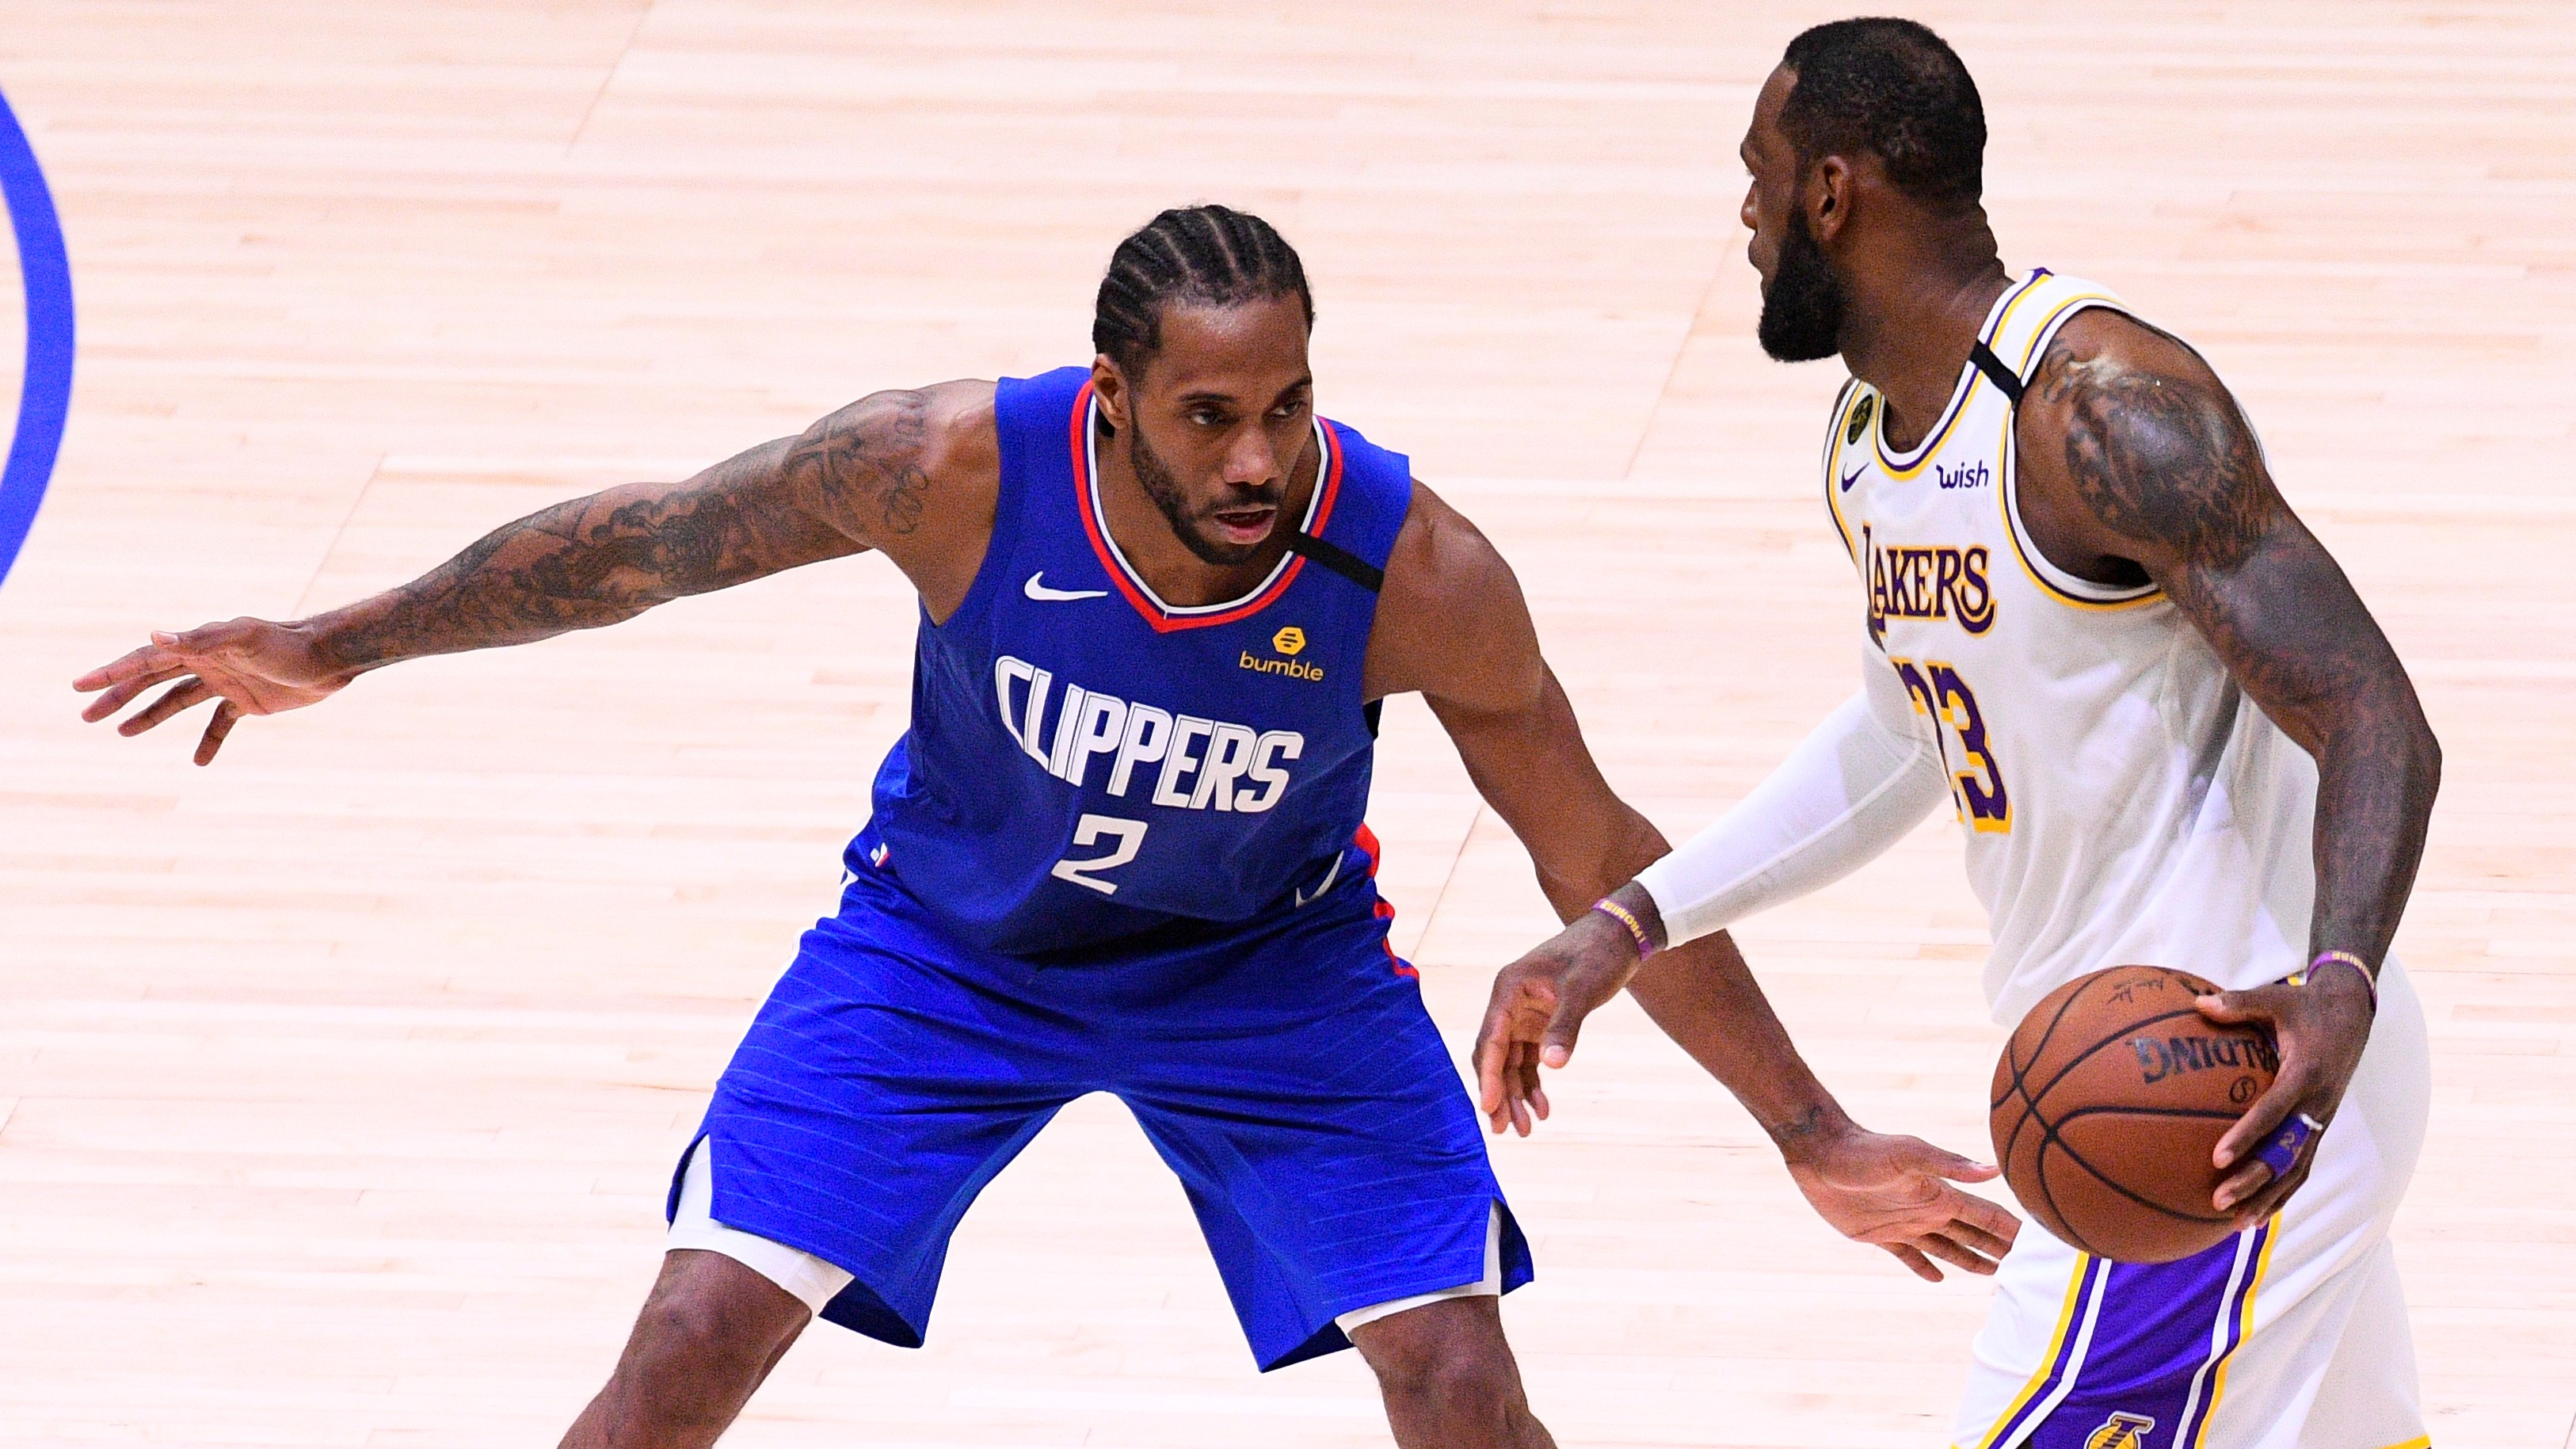 Clippers vs Lakers live stream: how to watch the NBA game online from anywhere thumbnail